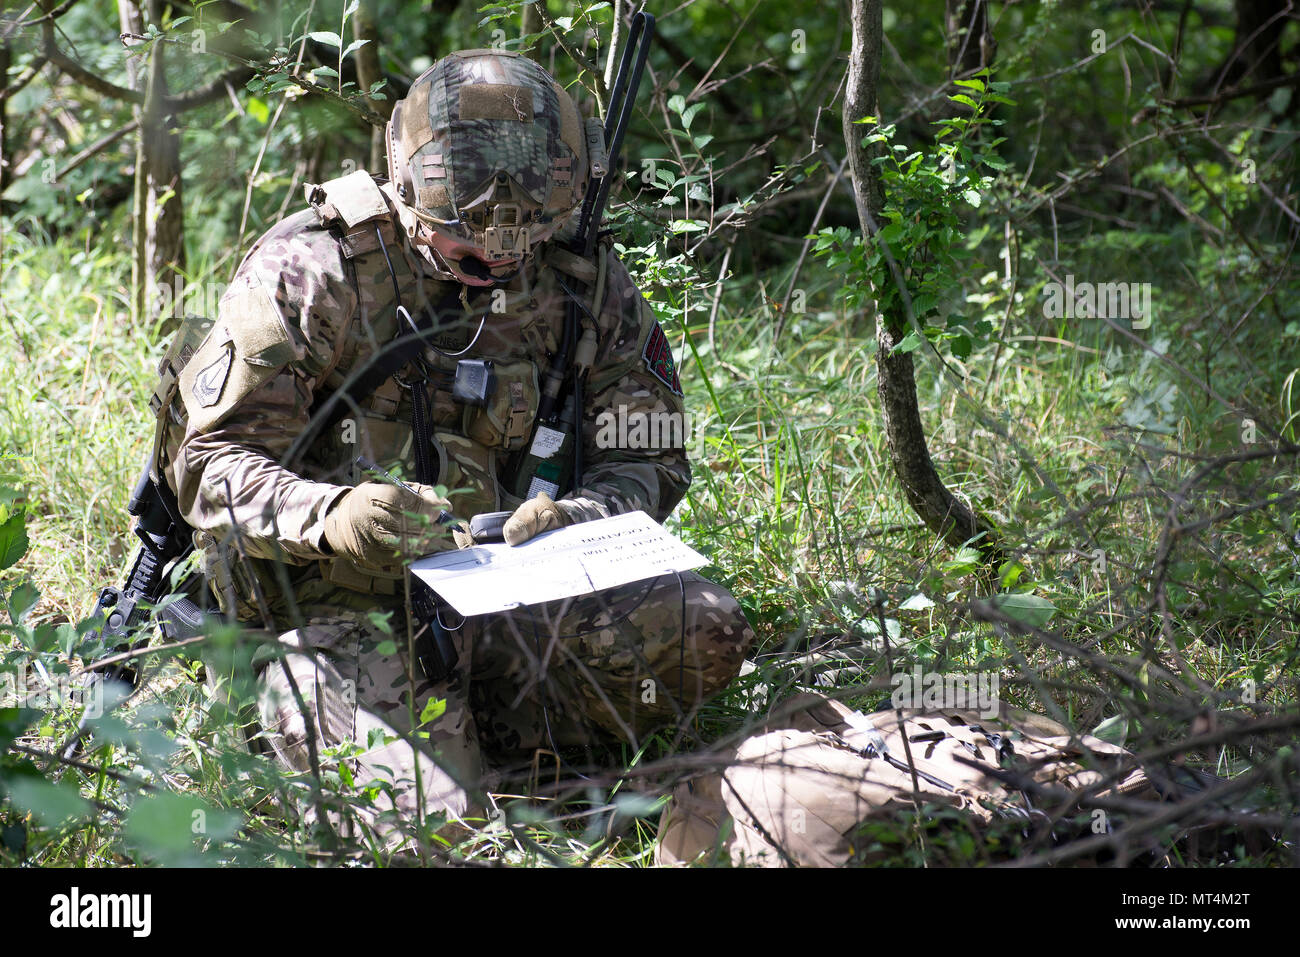 a hungarian special operations forces soldier logs information about